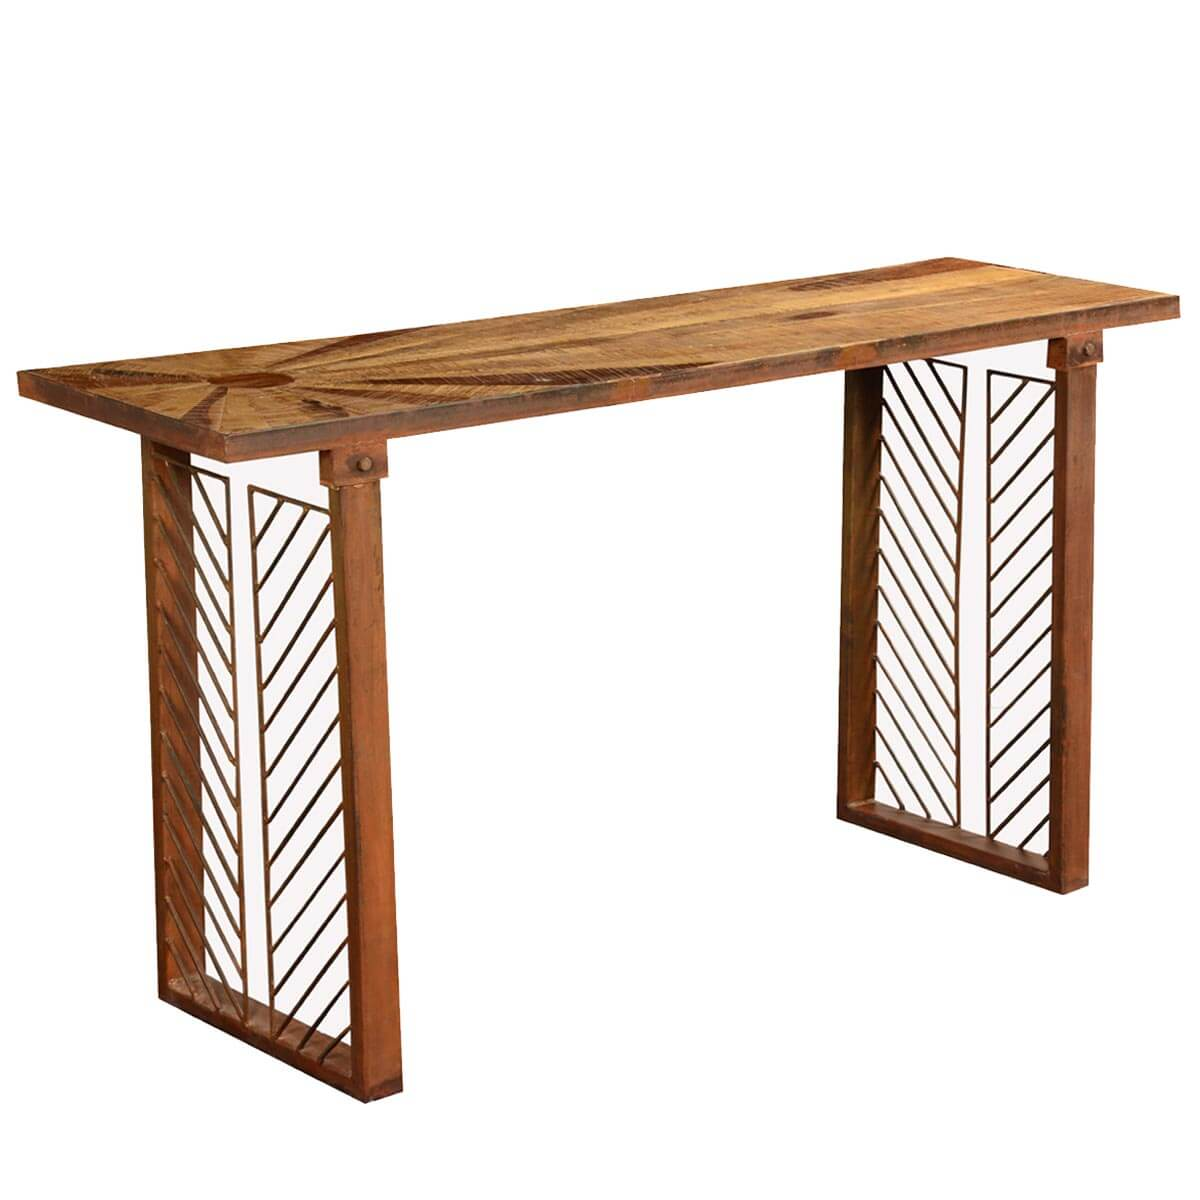 Contemporary Sunburst Reclaimed Wood Iron Hall Console Table